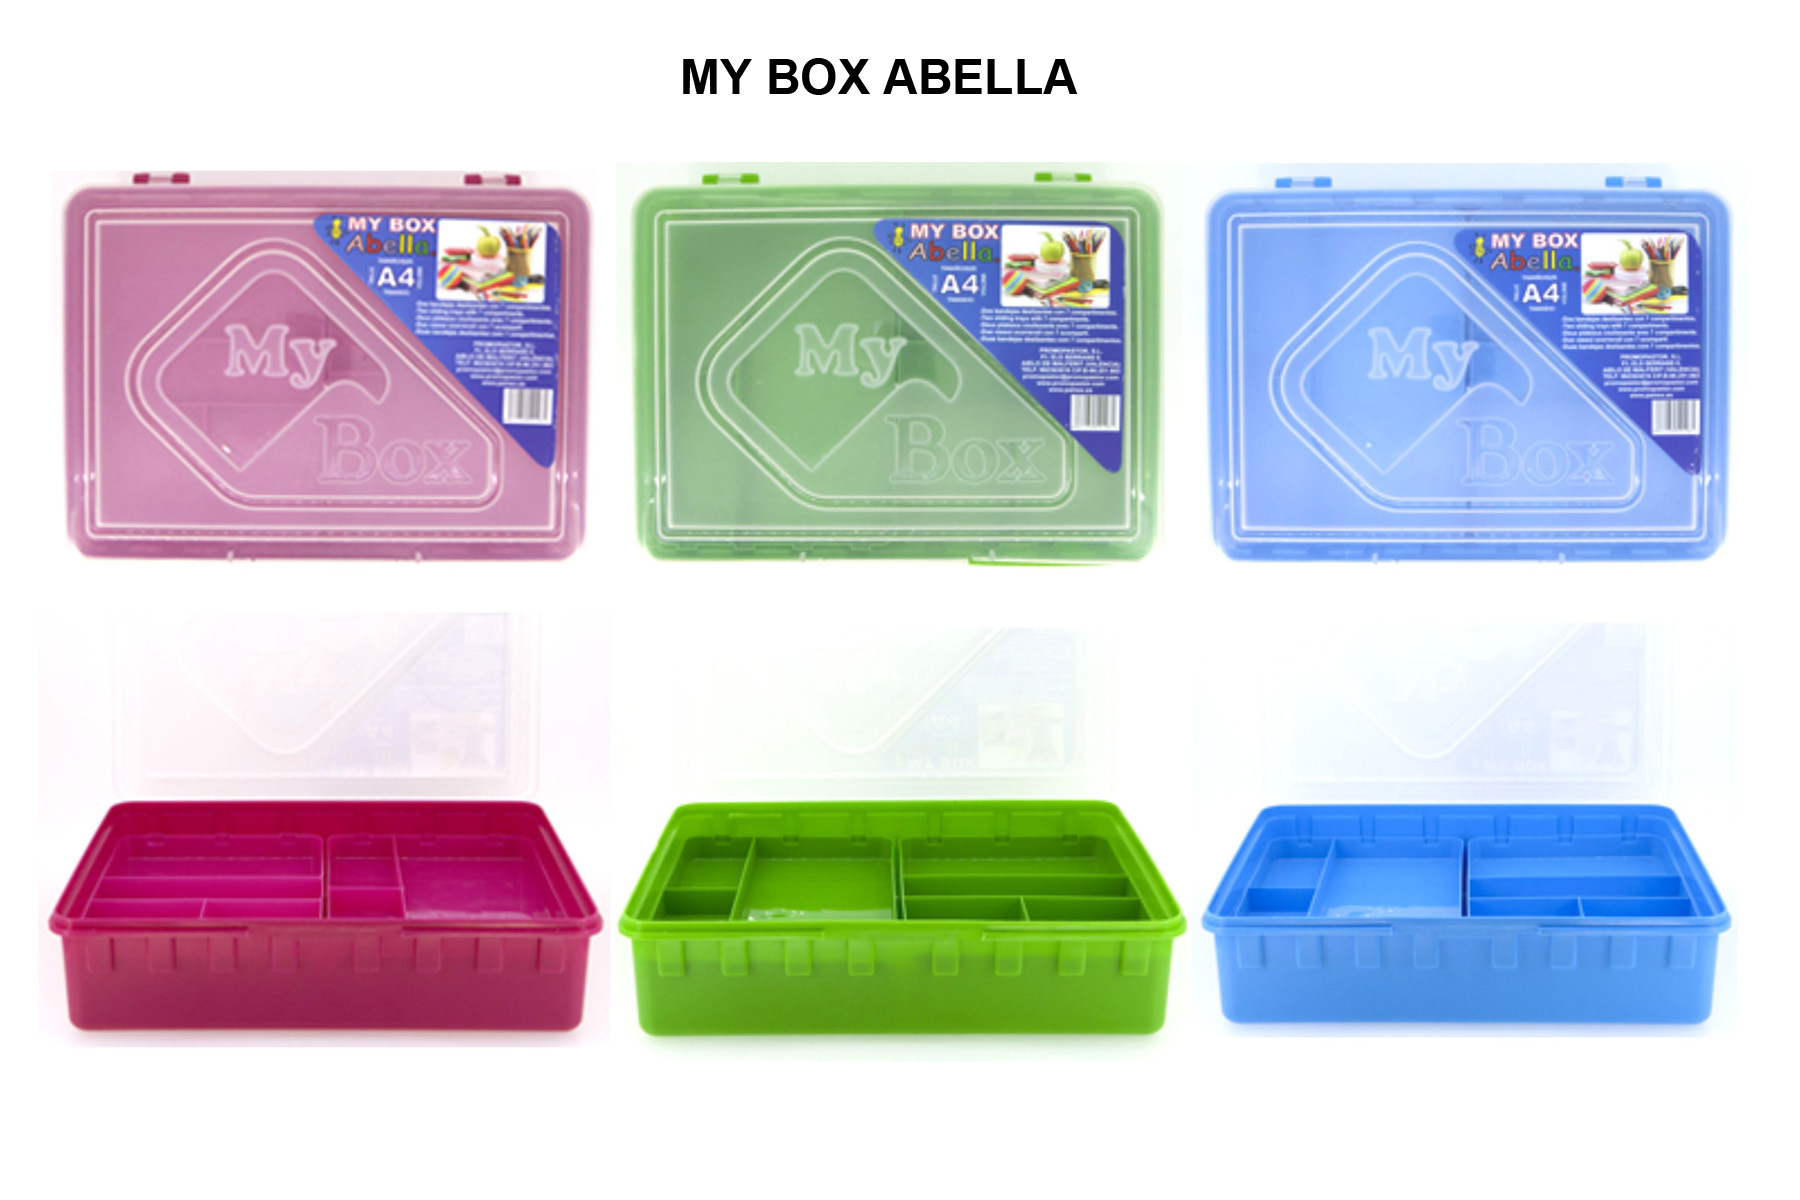 MY BOX ABELLA